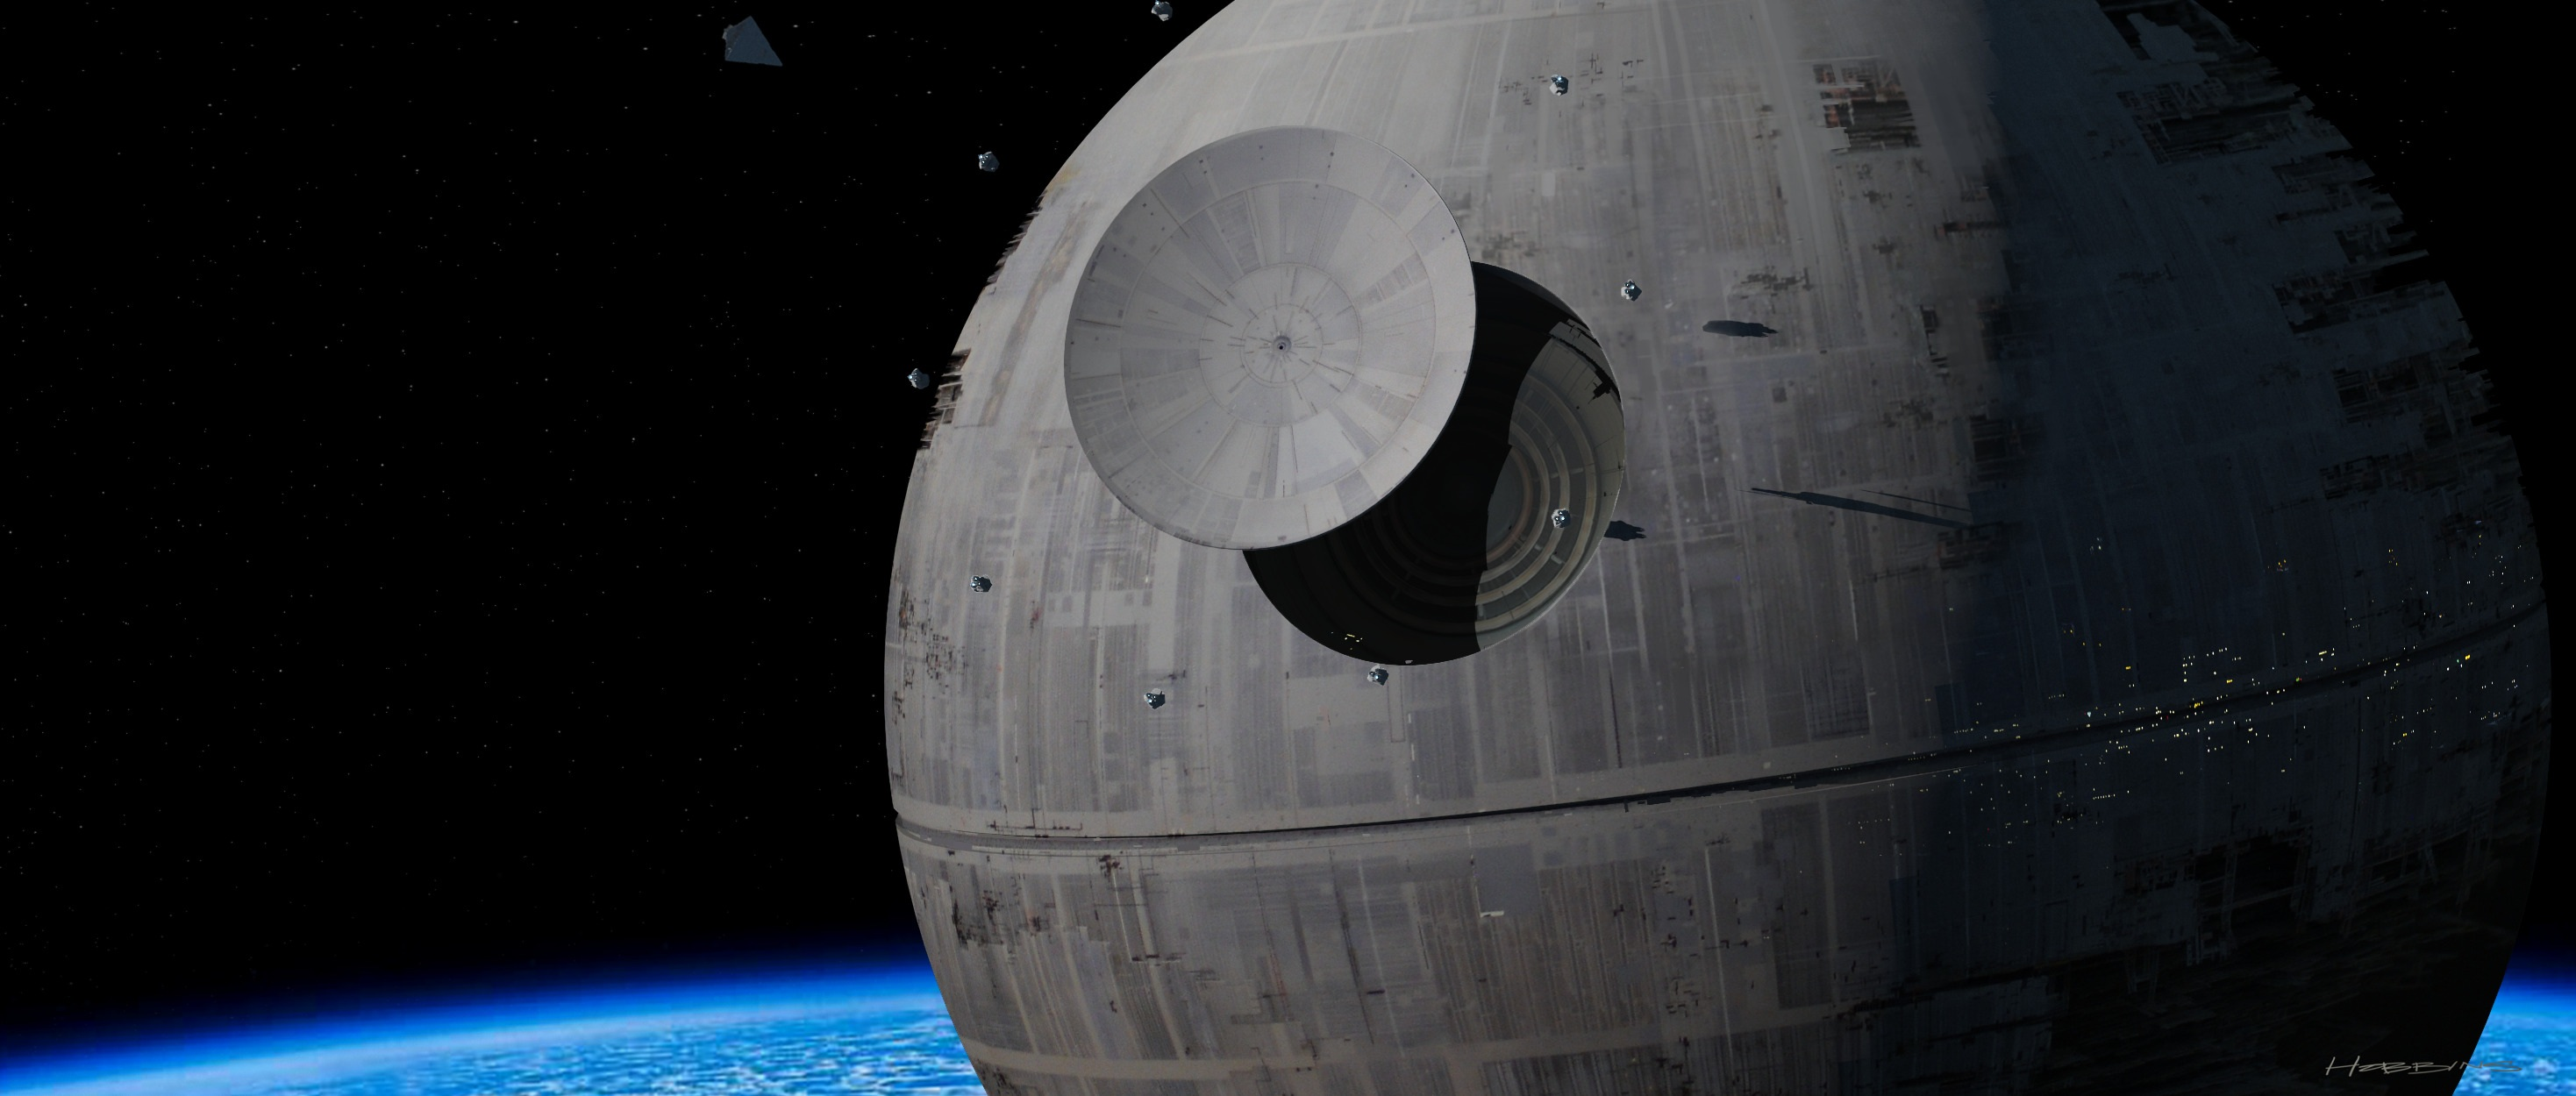 Concept artist David Hobbins depicts the Death Star's superlaser focus lens being maneuvered into position.